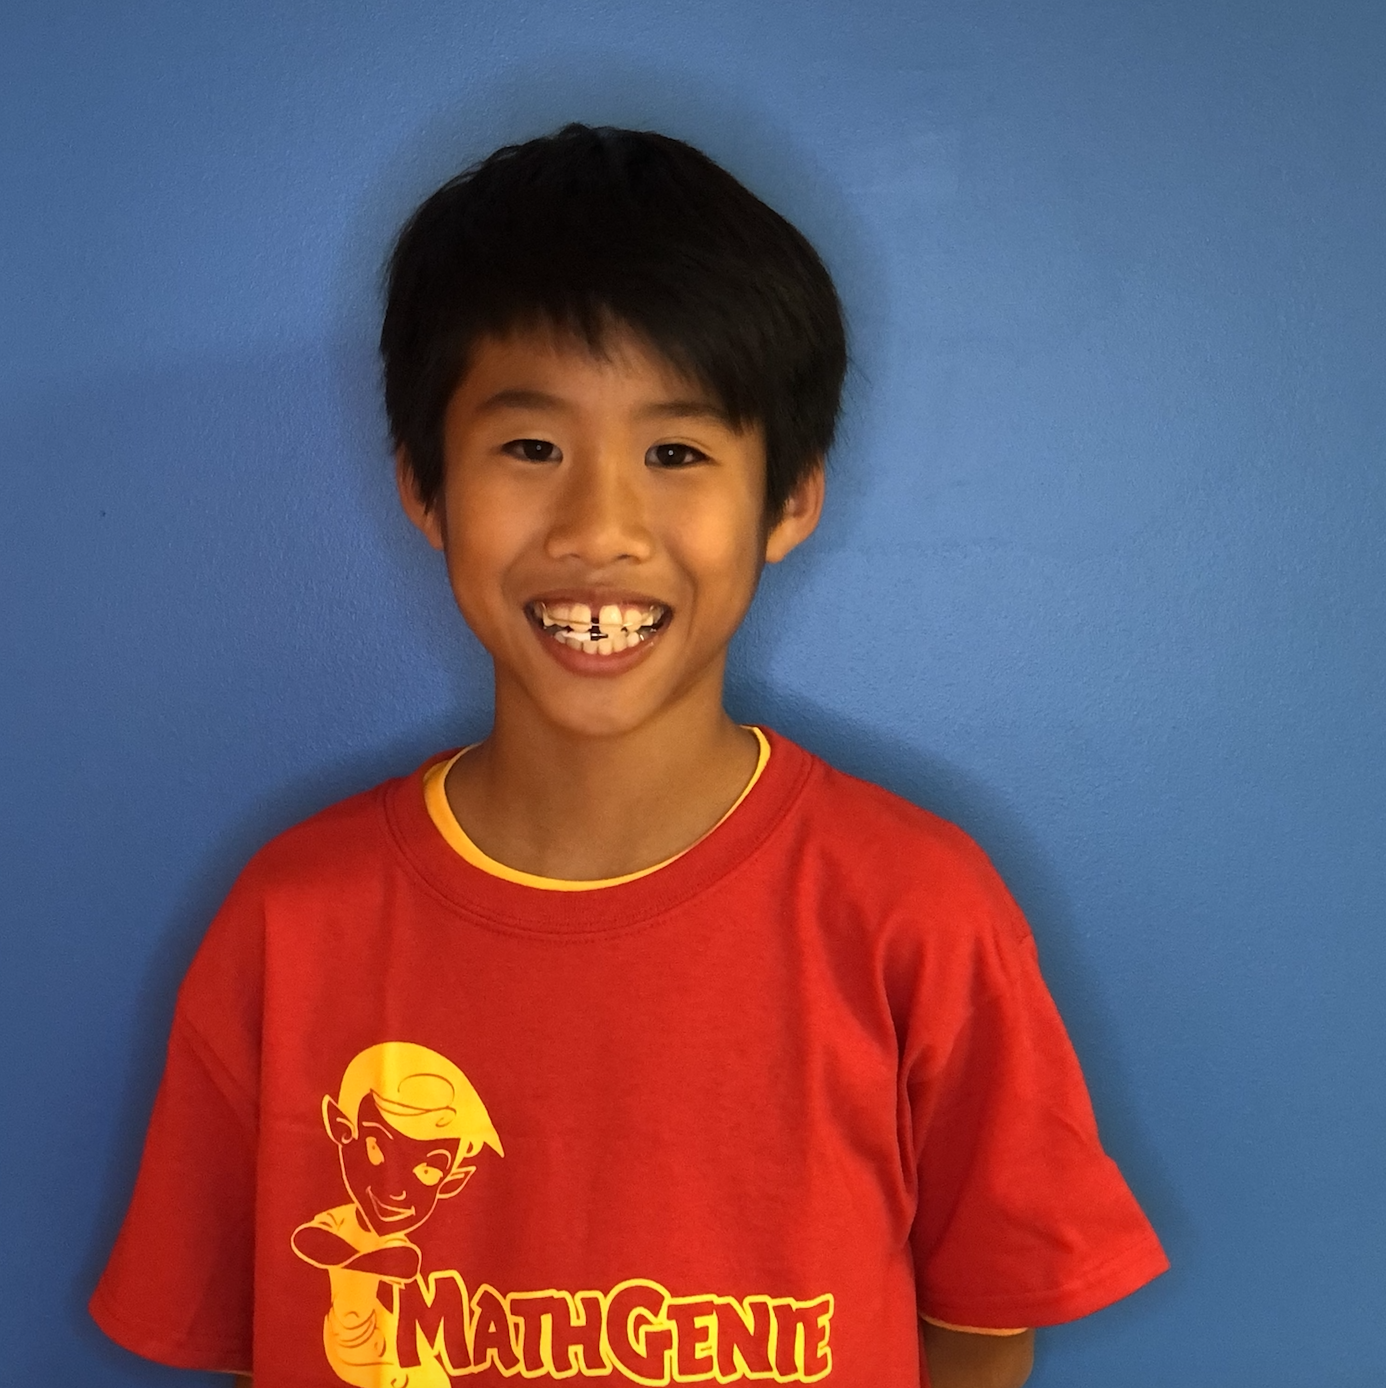 Caleb Success Math Genie Abacus Gifted Talented Edison Math Engineering